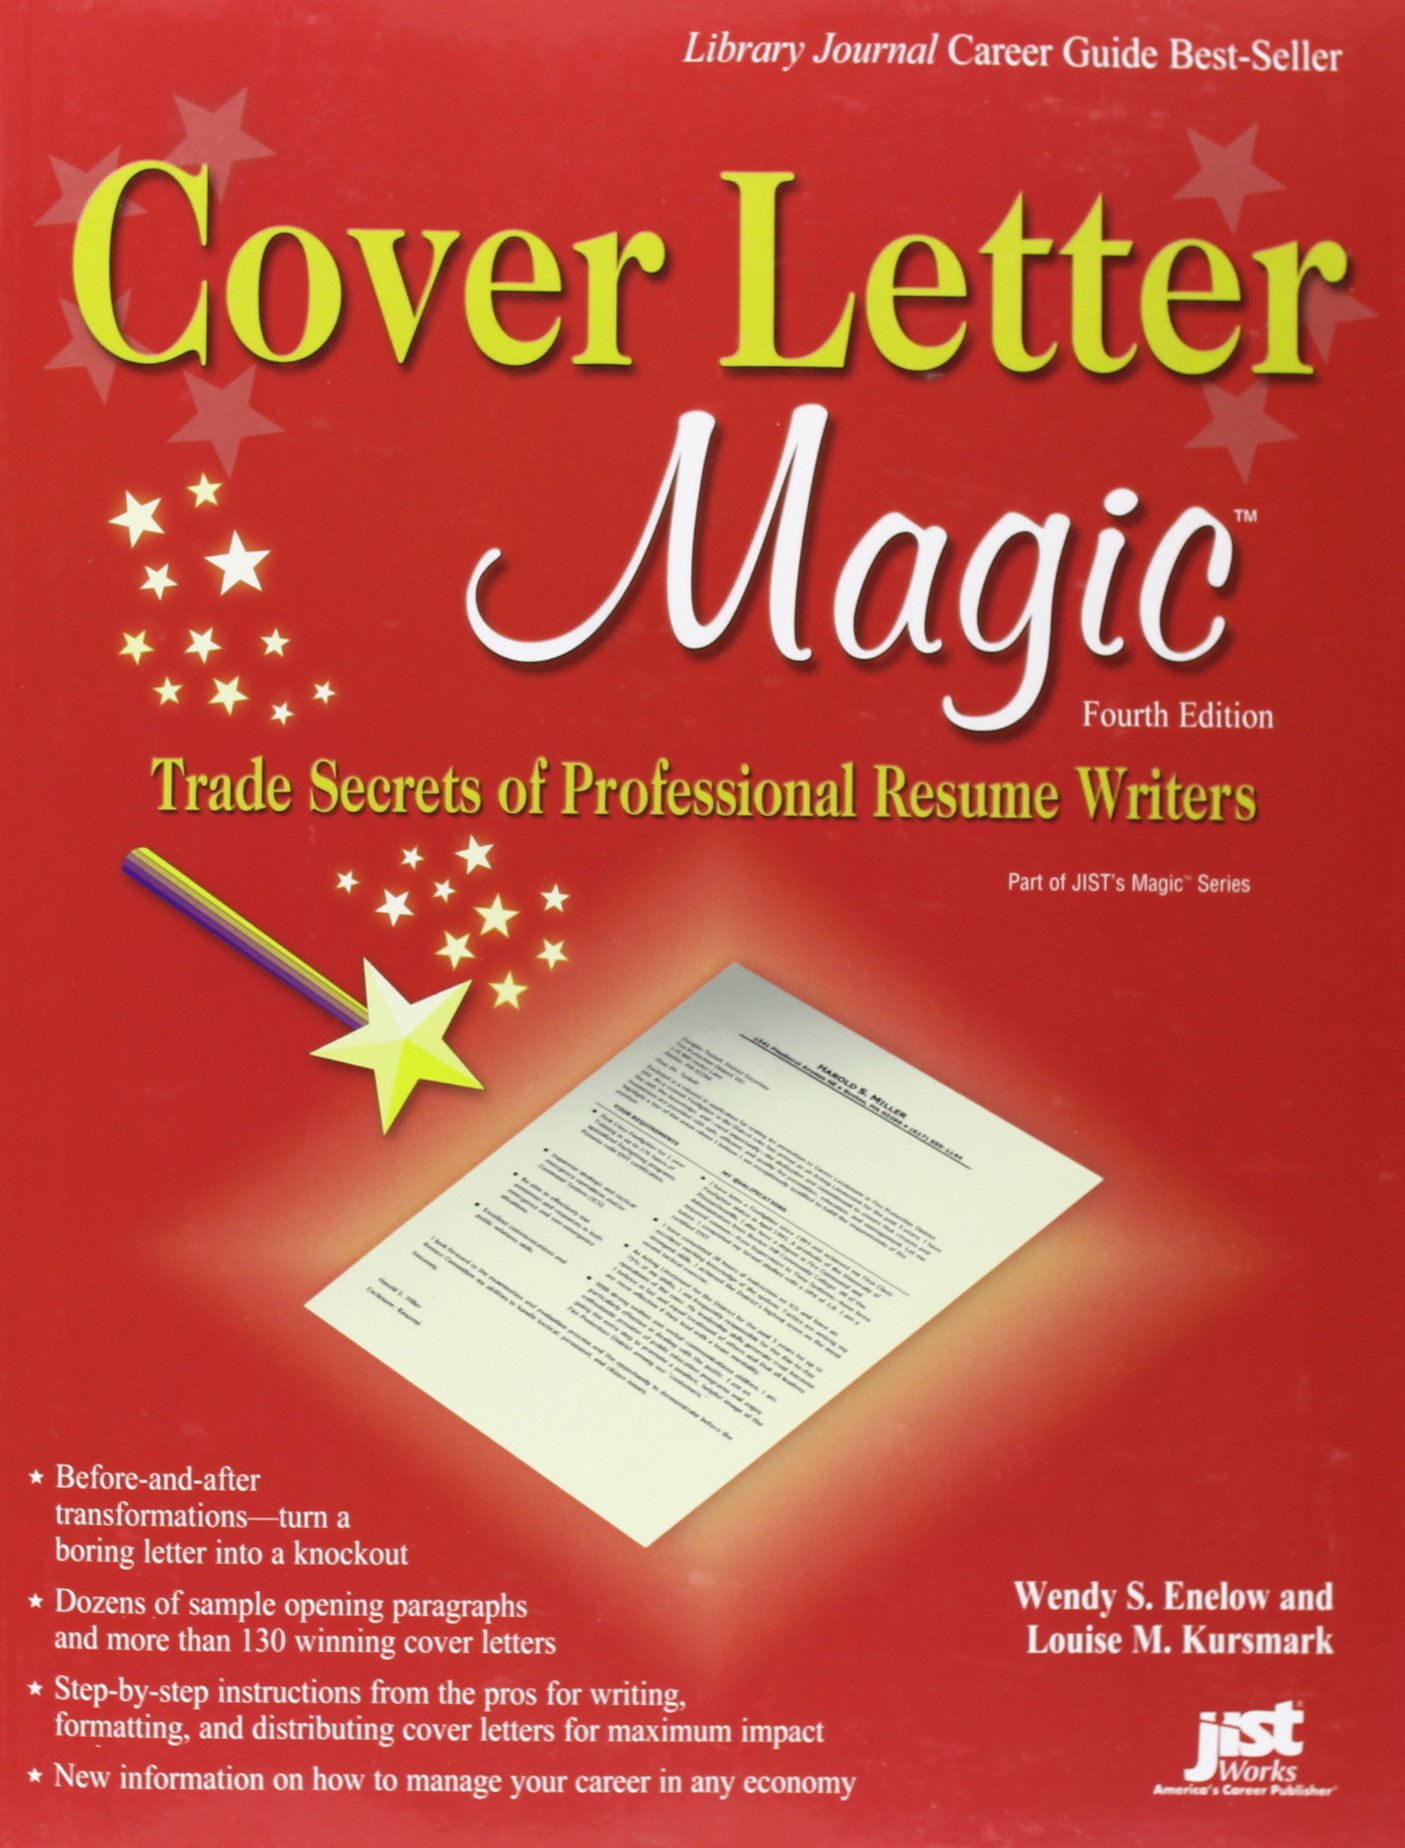 cover letter magic 4th ed trade secrets of professional resume writers wendy s enelow louise m kursmark 9781593577353 amazoncom books - A Professional Cover Letter